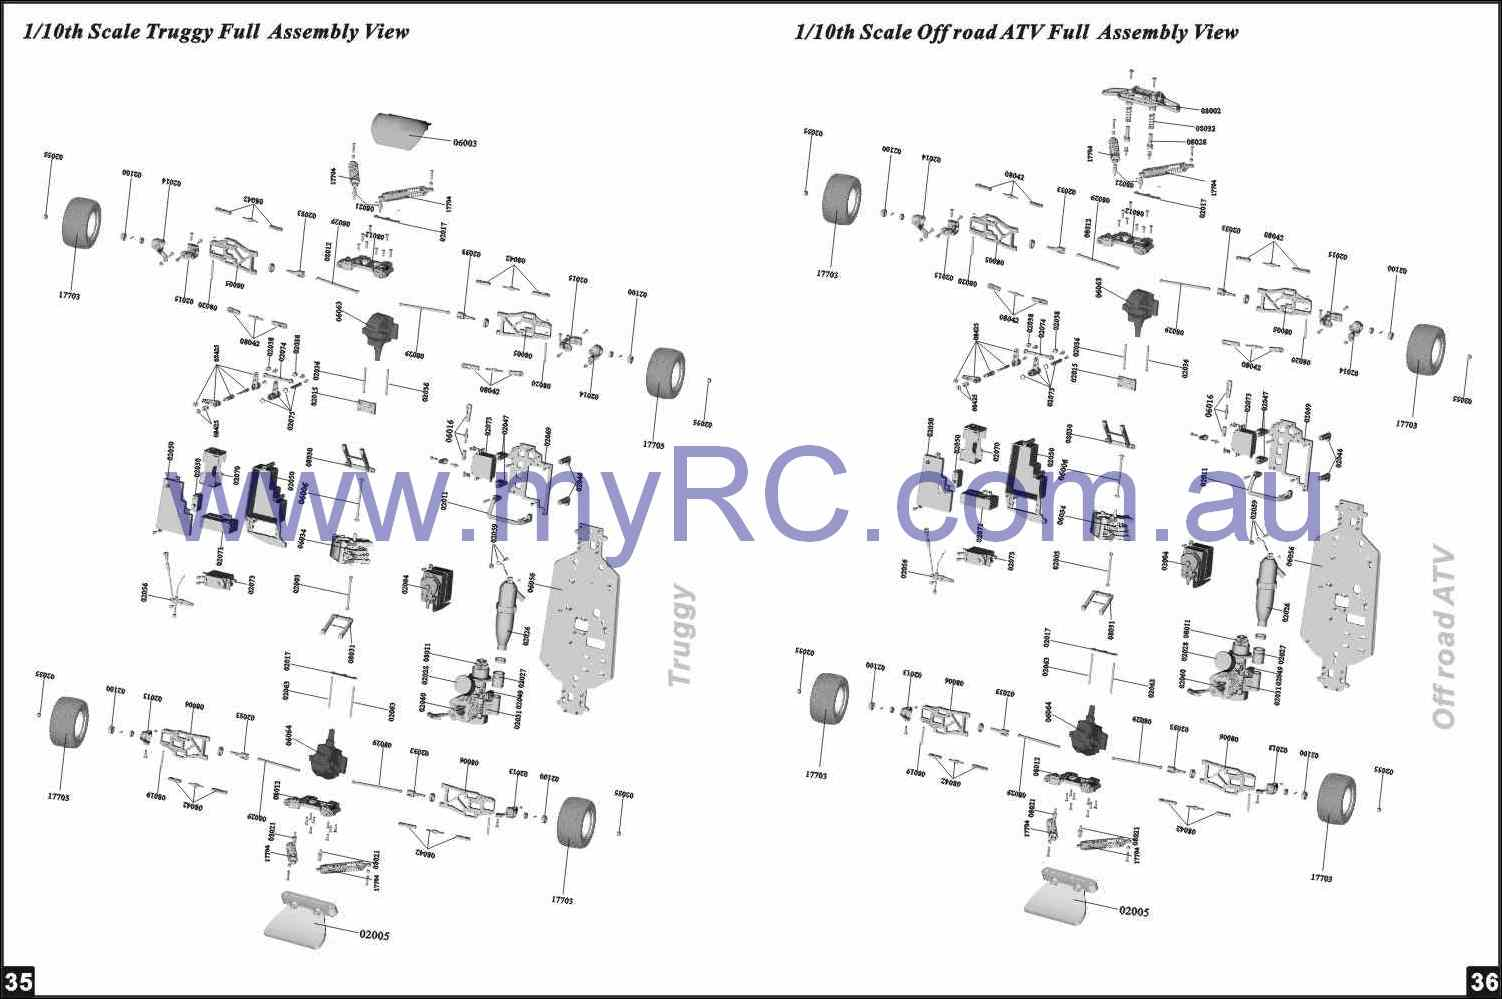 rc nitro engine diagram rc free engine image for user 2013 polaris ranger 900 light bar wiring diagram rigid industries light bar wiring diagram #9